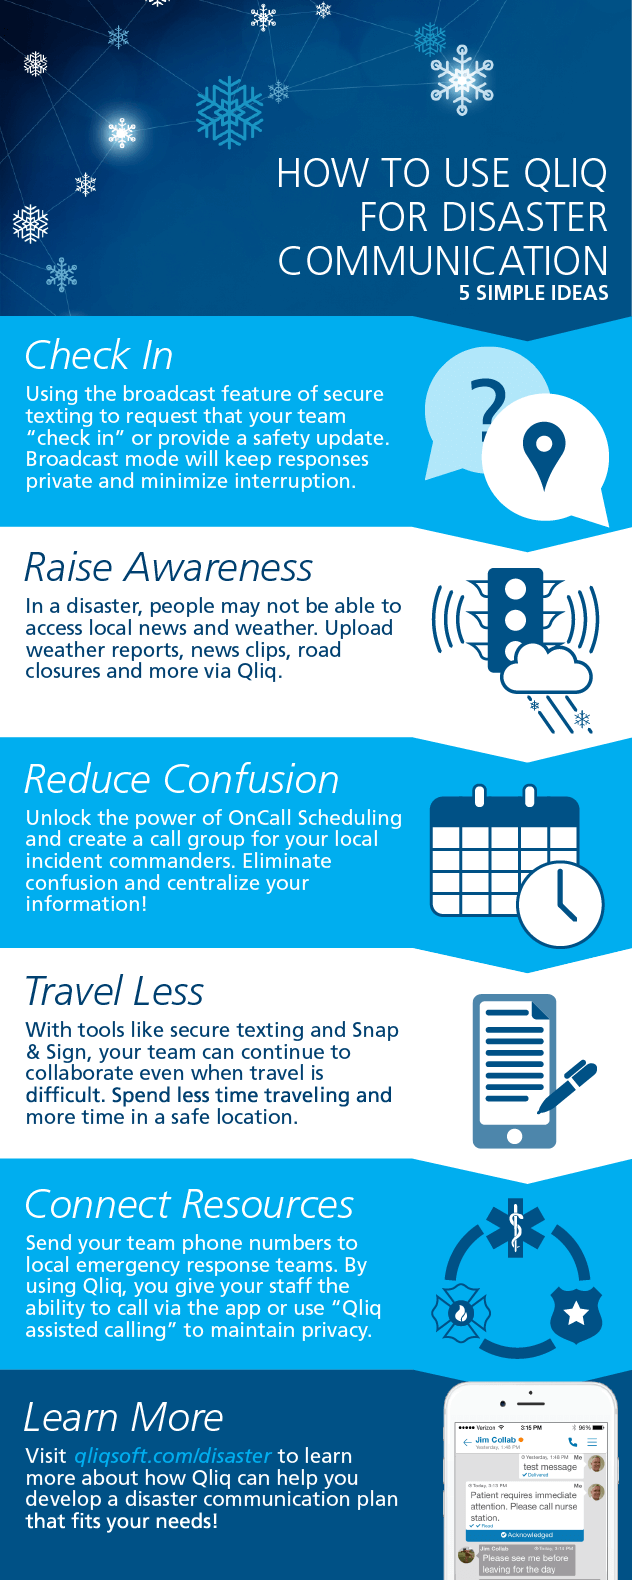 Disaster Communication Infographic explaining the role of Qliq secure texting in emergency preparedness planning